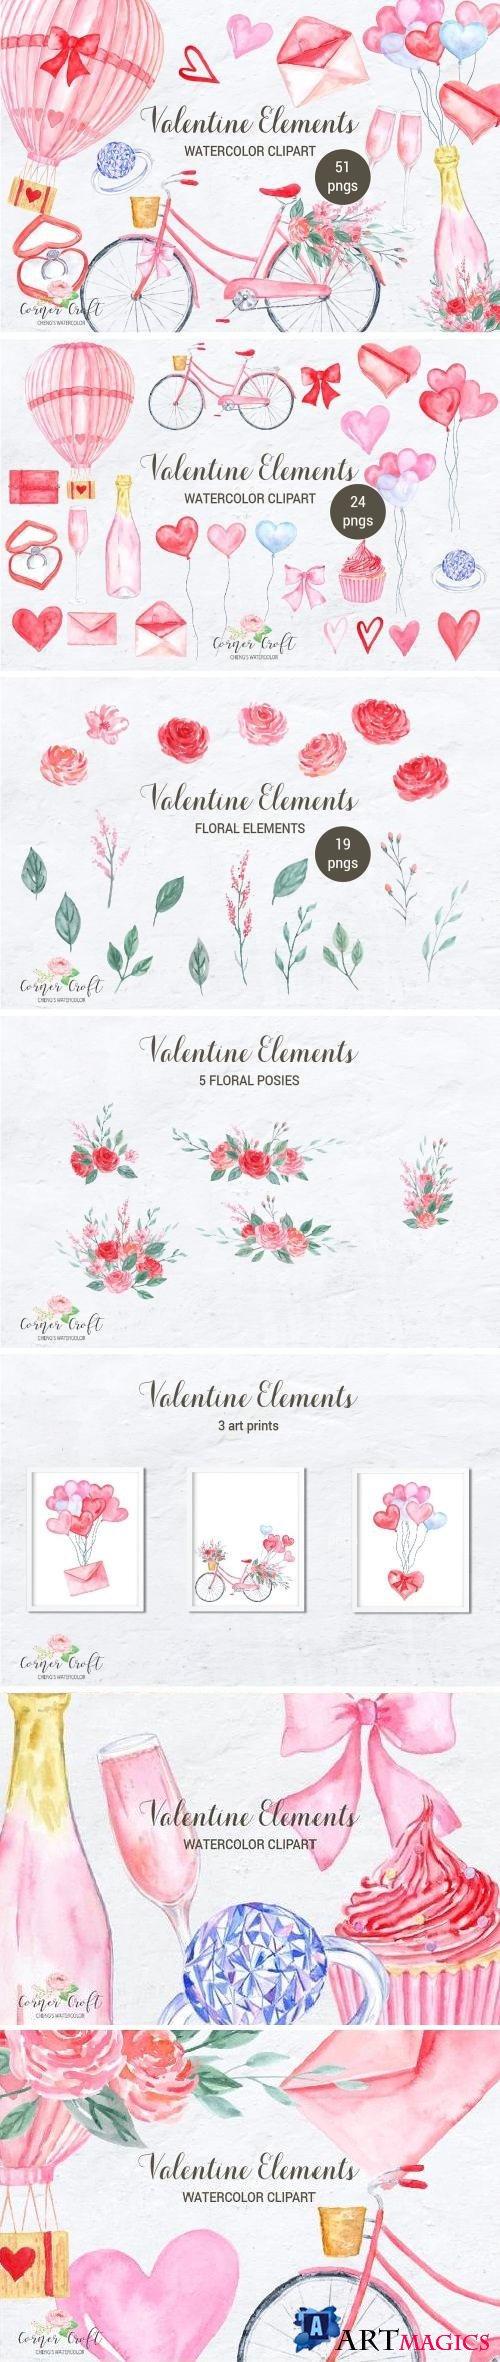 Watercolor Valentine Elements - 2245127